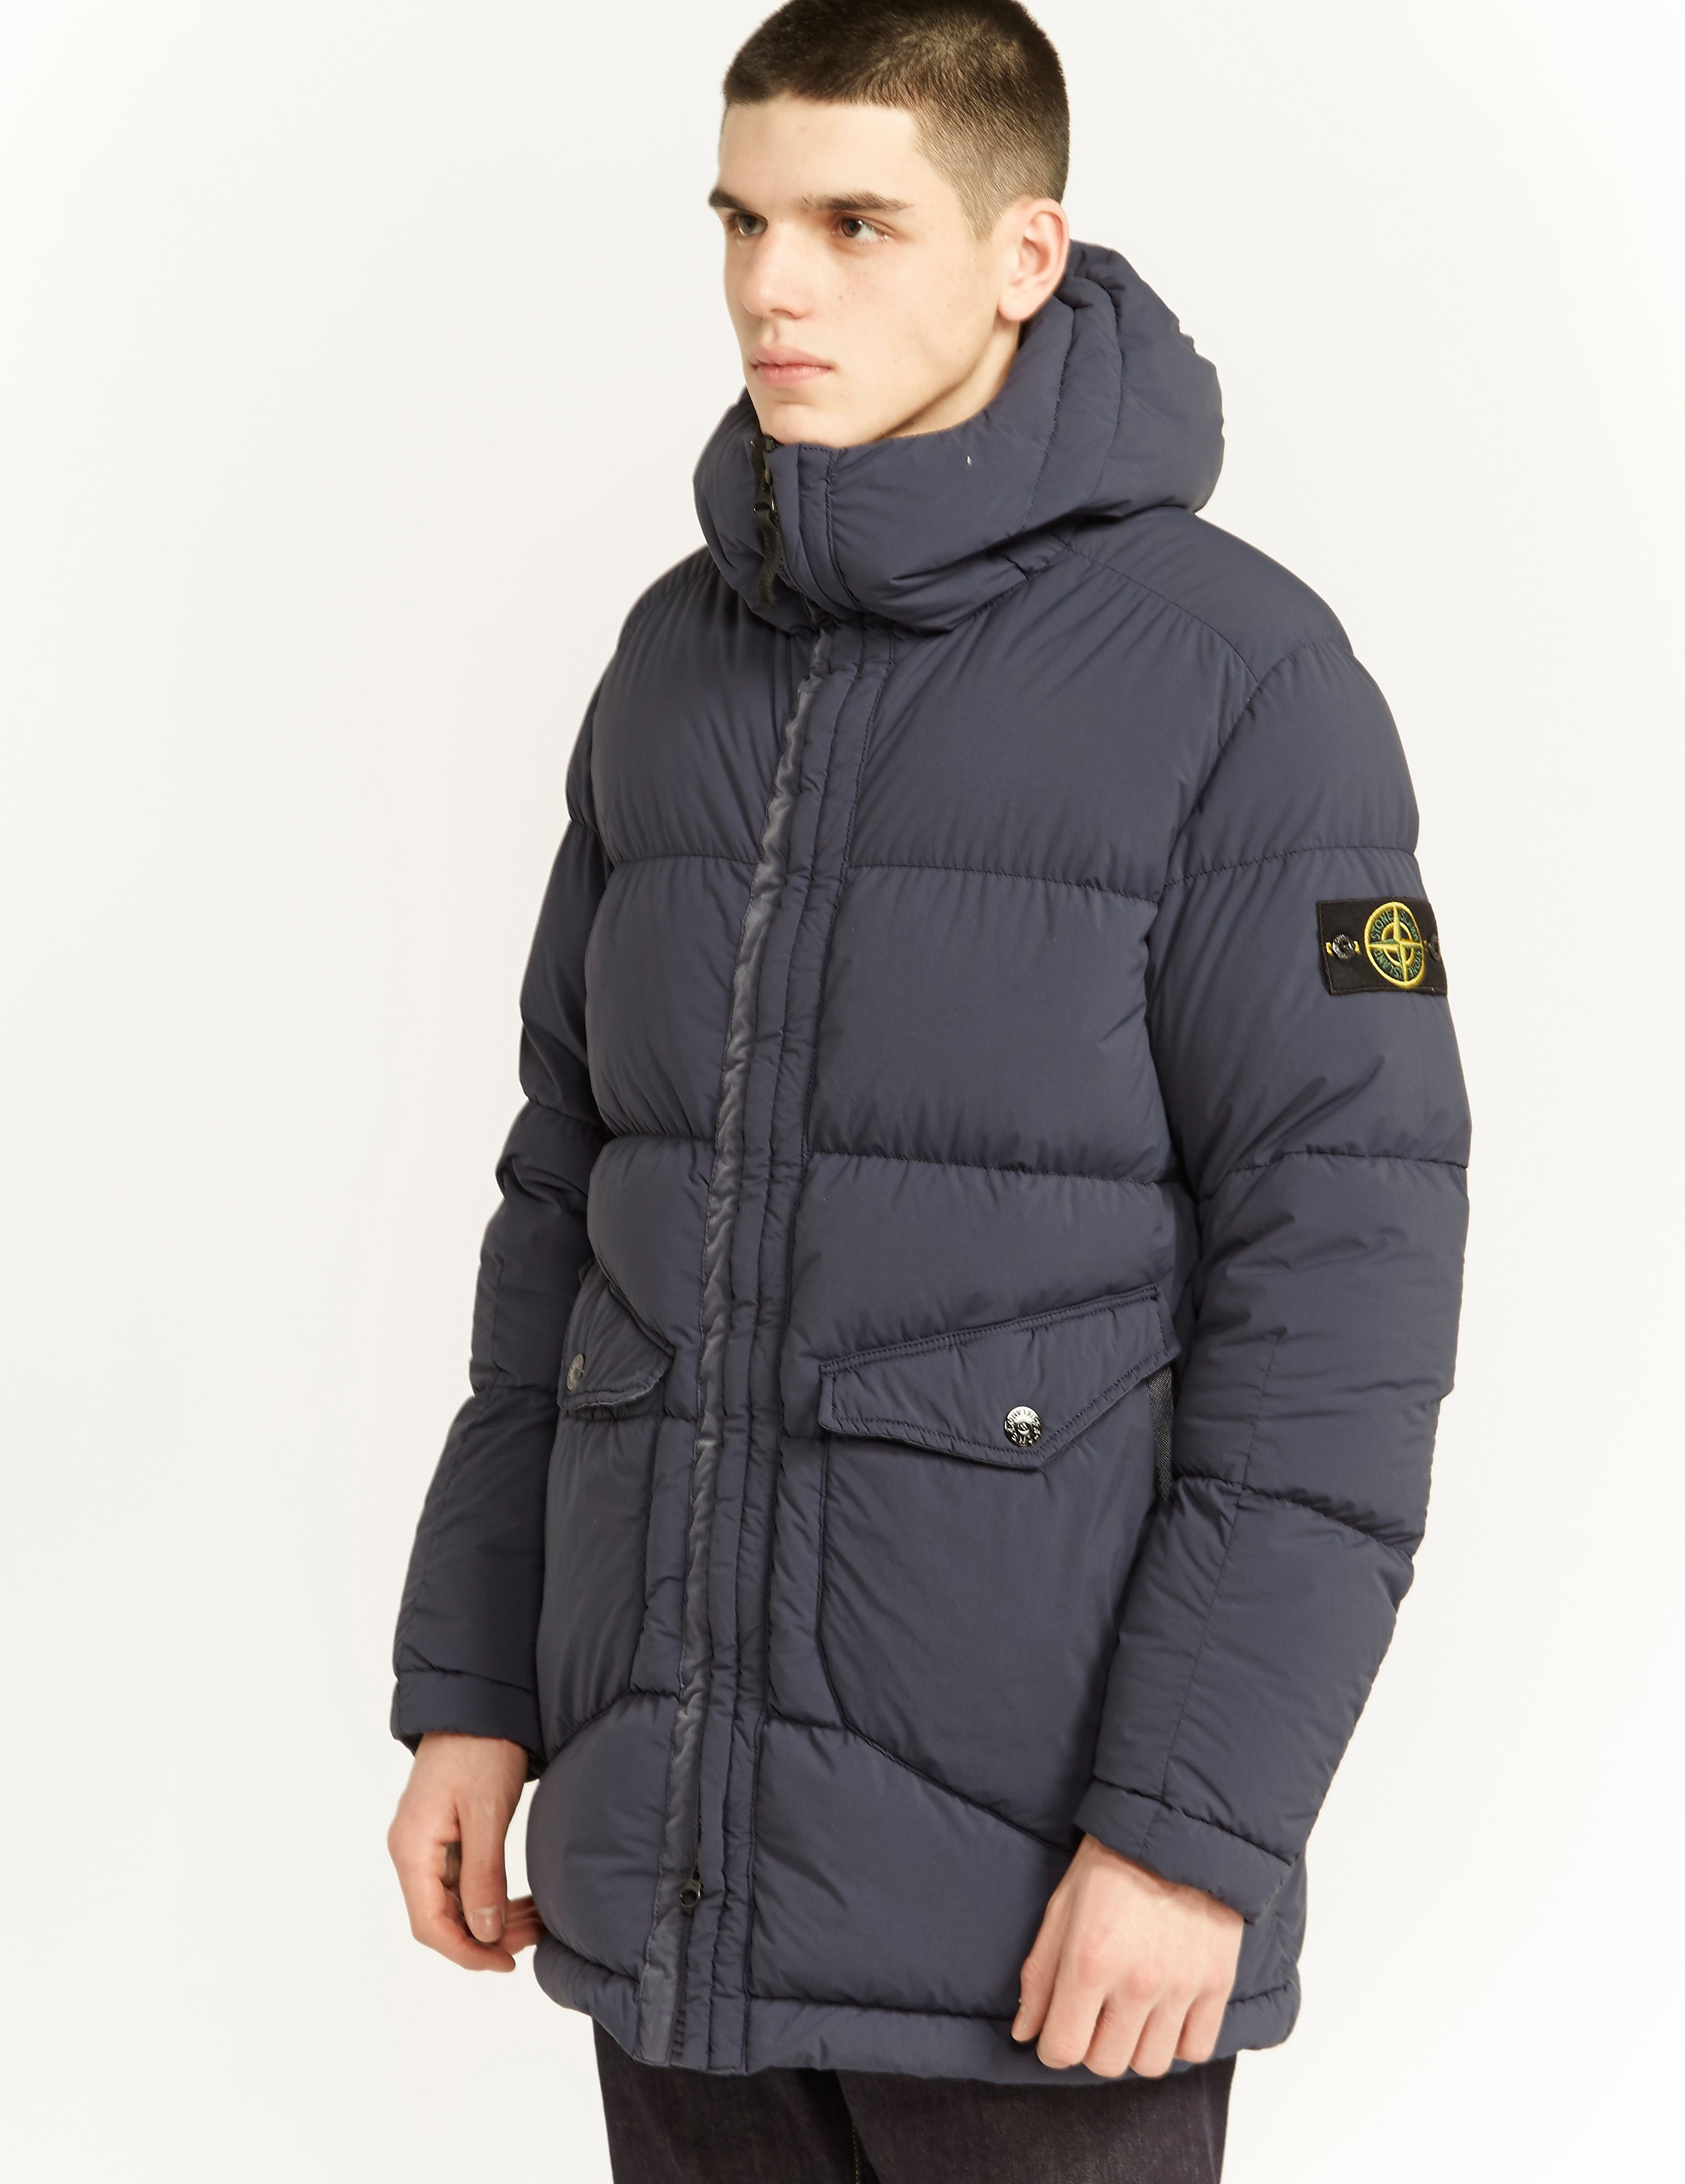 stone island jacket shop for cheap men 39 s outerwear and. Black Bedroom Furniture Sets. Home Design Ideas